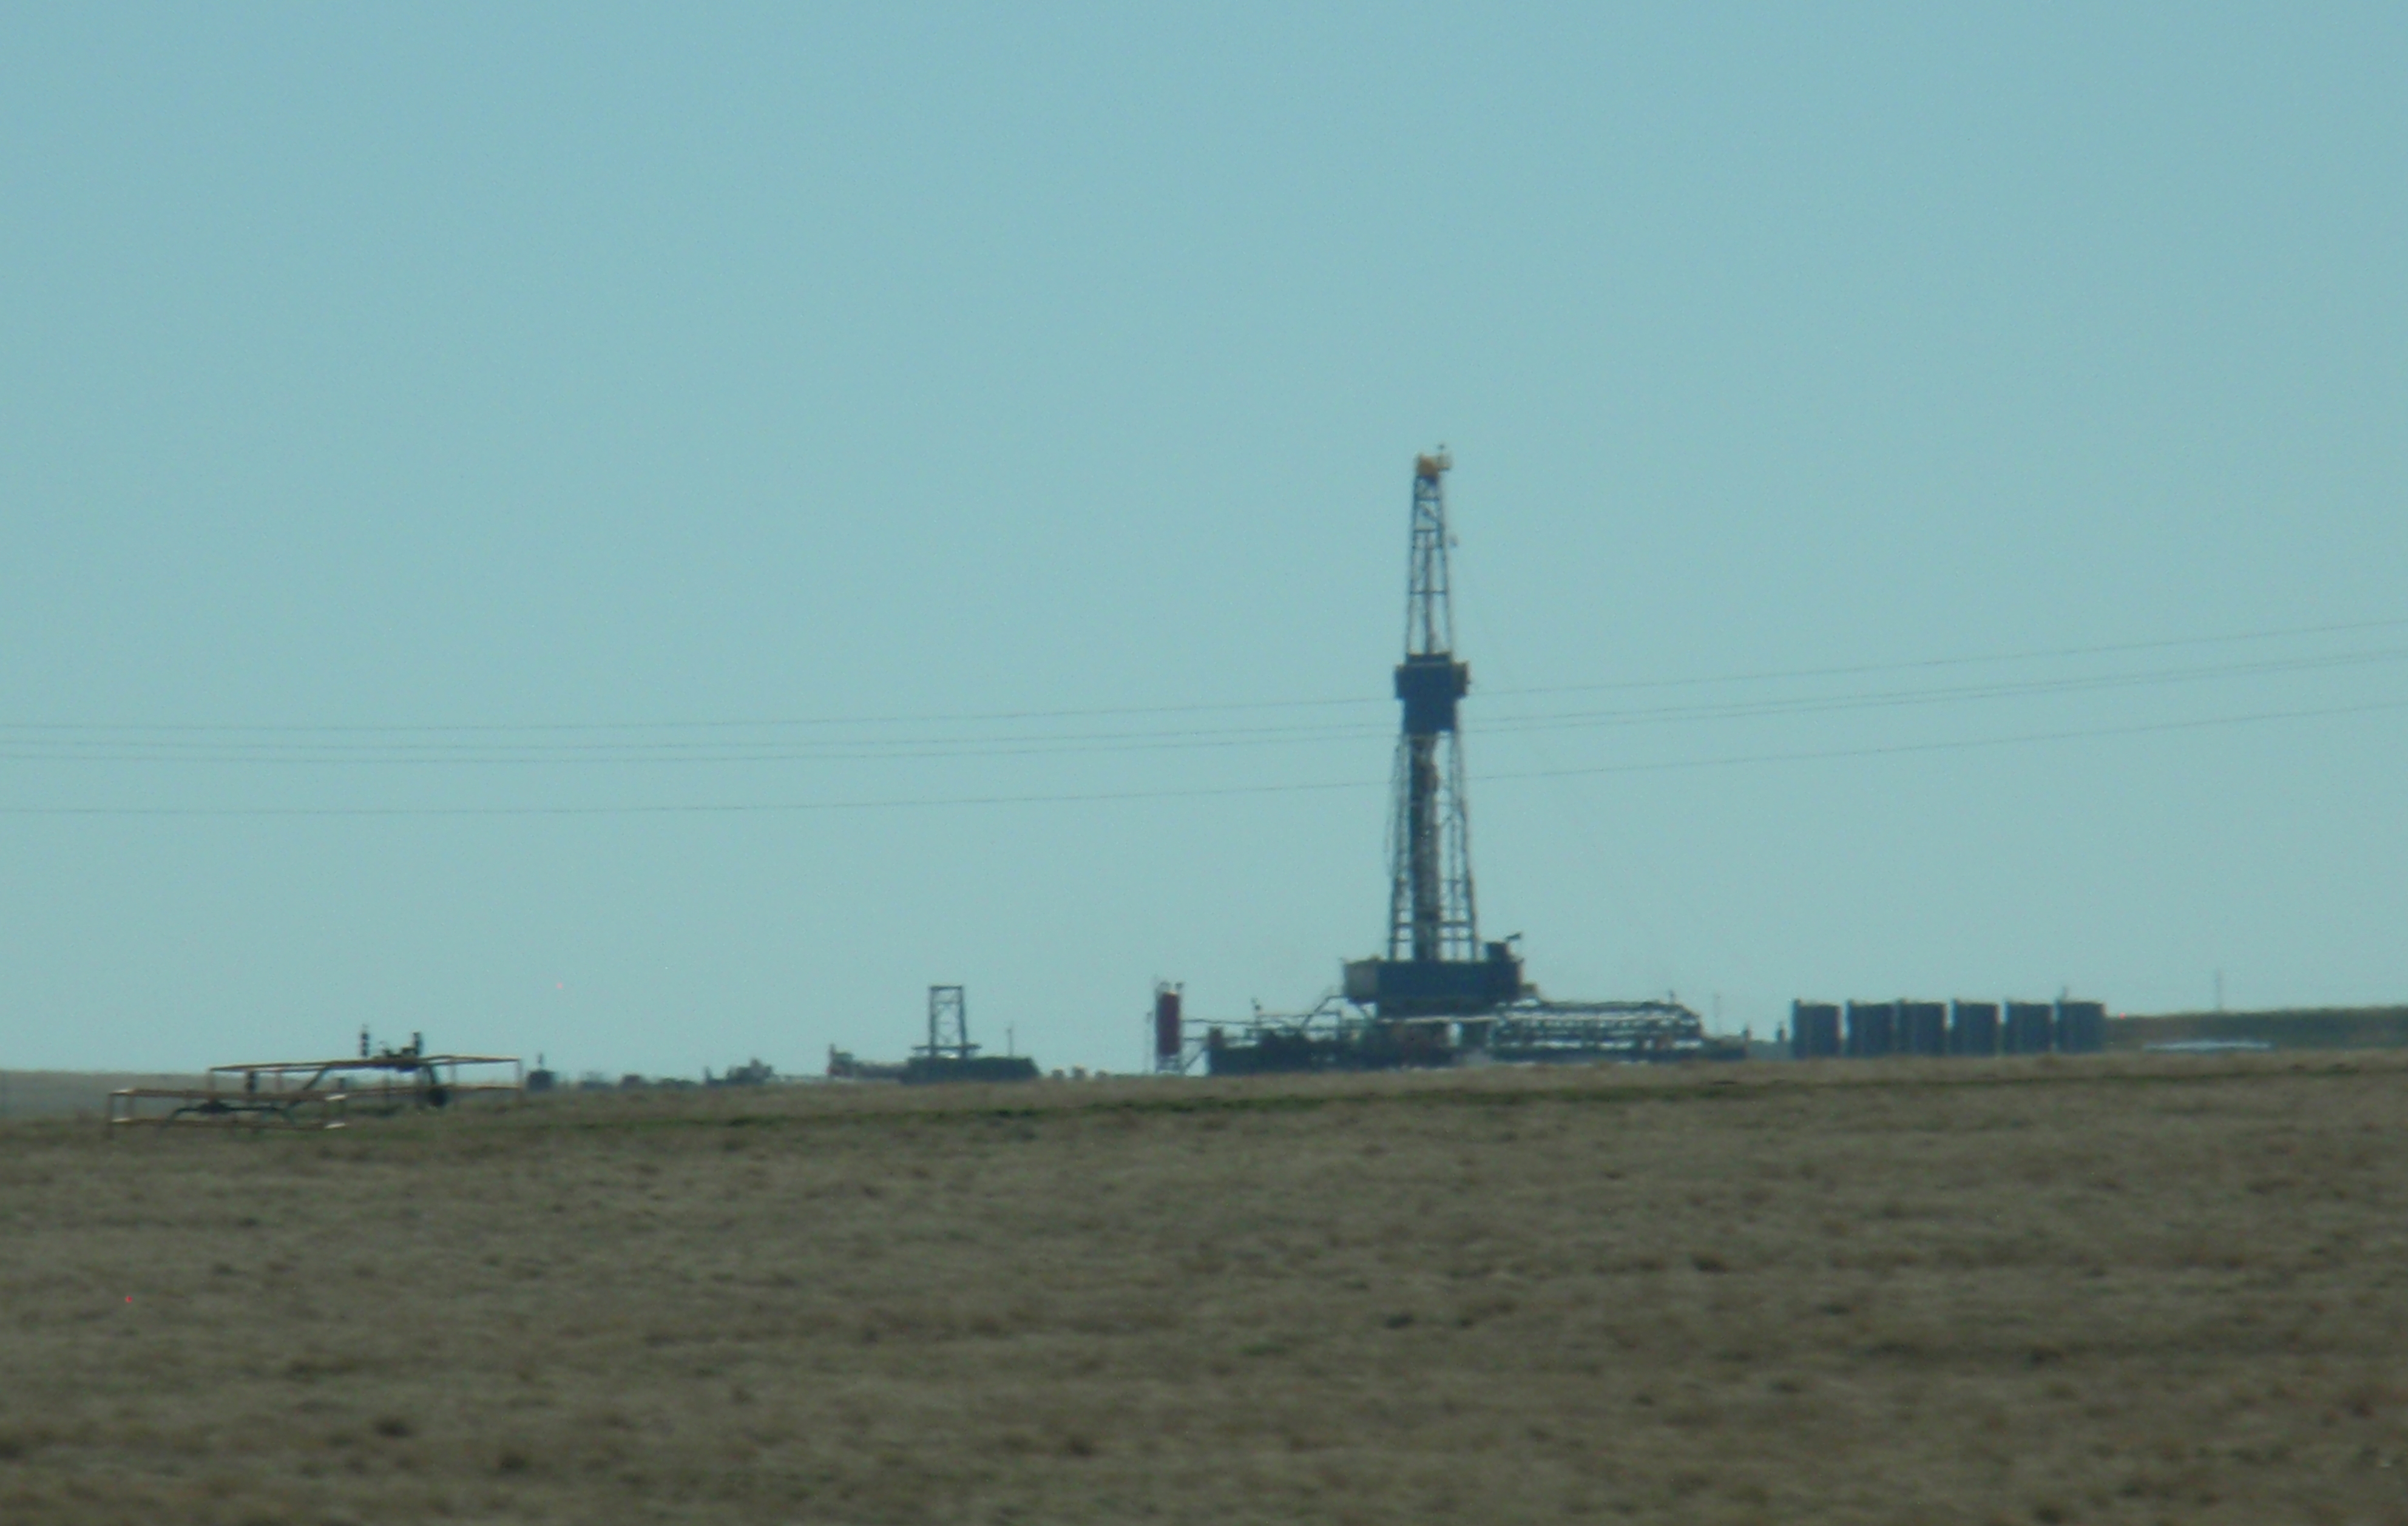 There are still a lot of rigs visible on the drive from Minot to Williston. Keep in mind that is one of the most productive areas. Photo by James Ulvog.